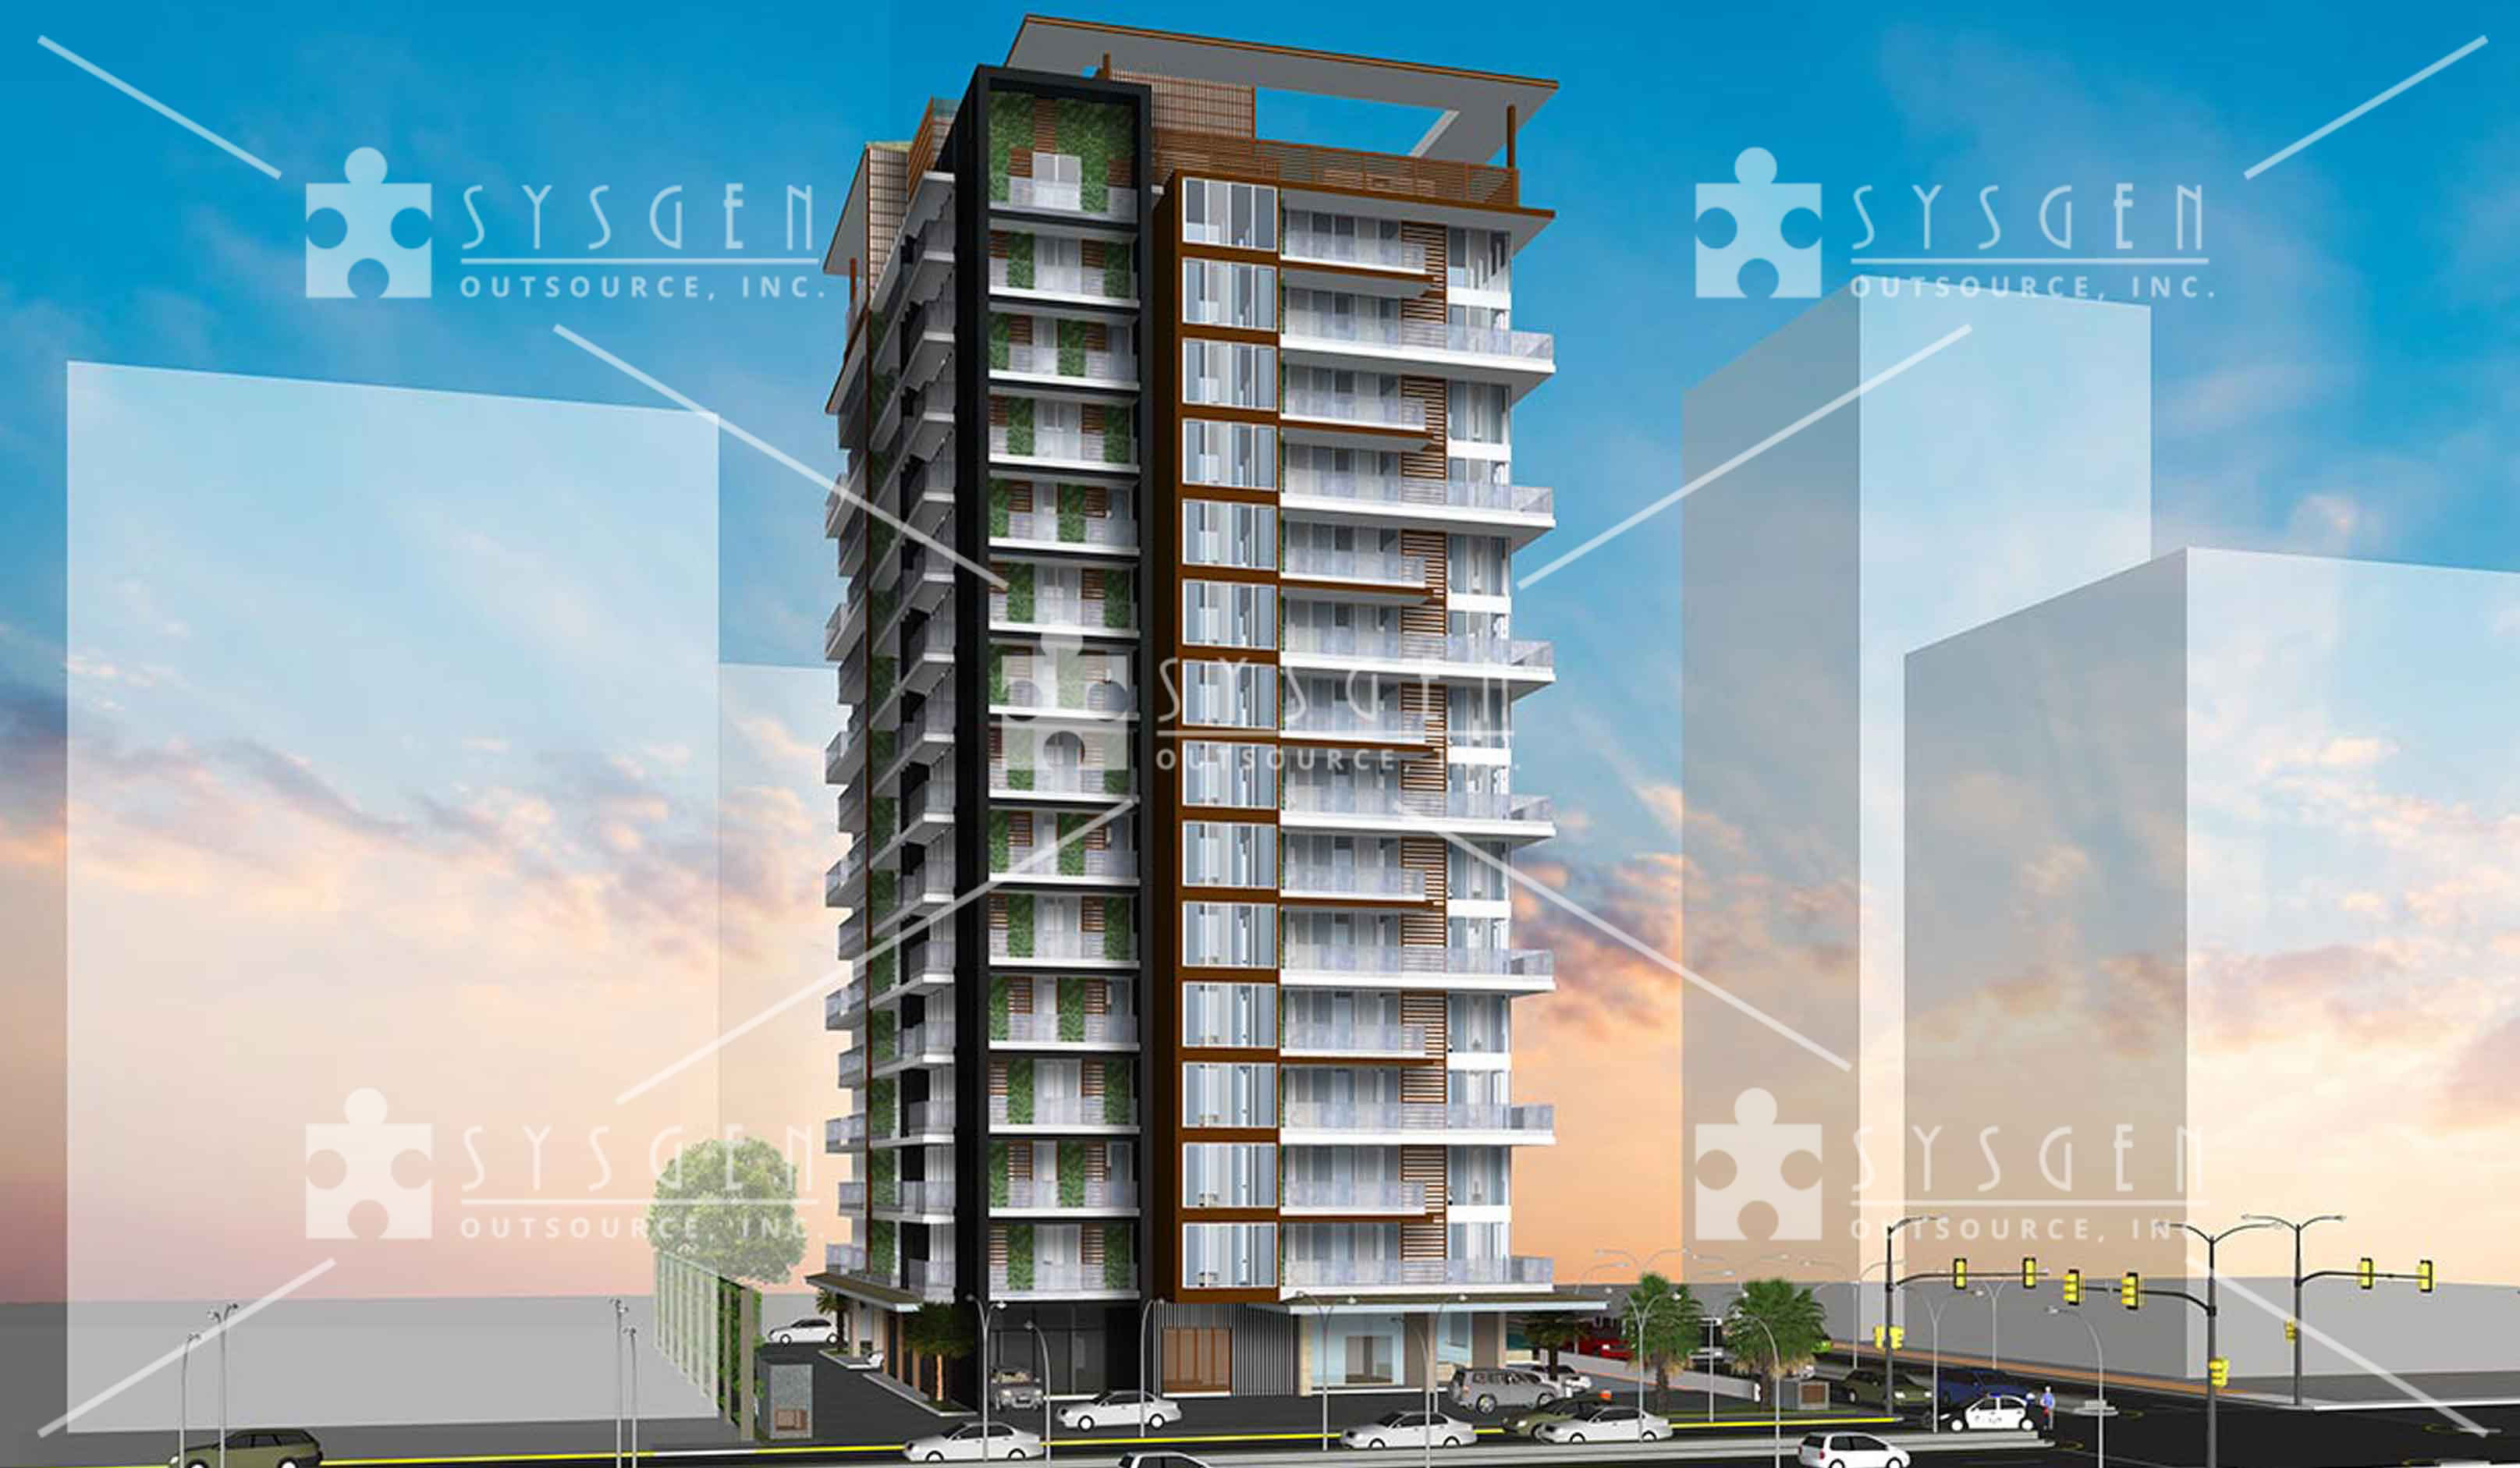 sysgen-outsource-cad-outsourcing-services-3d-presentation-apartment2